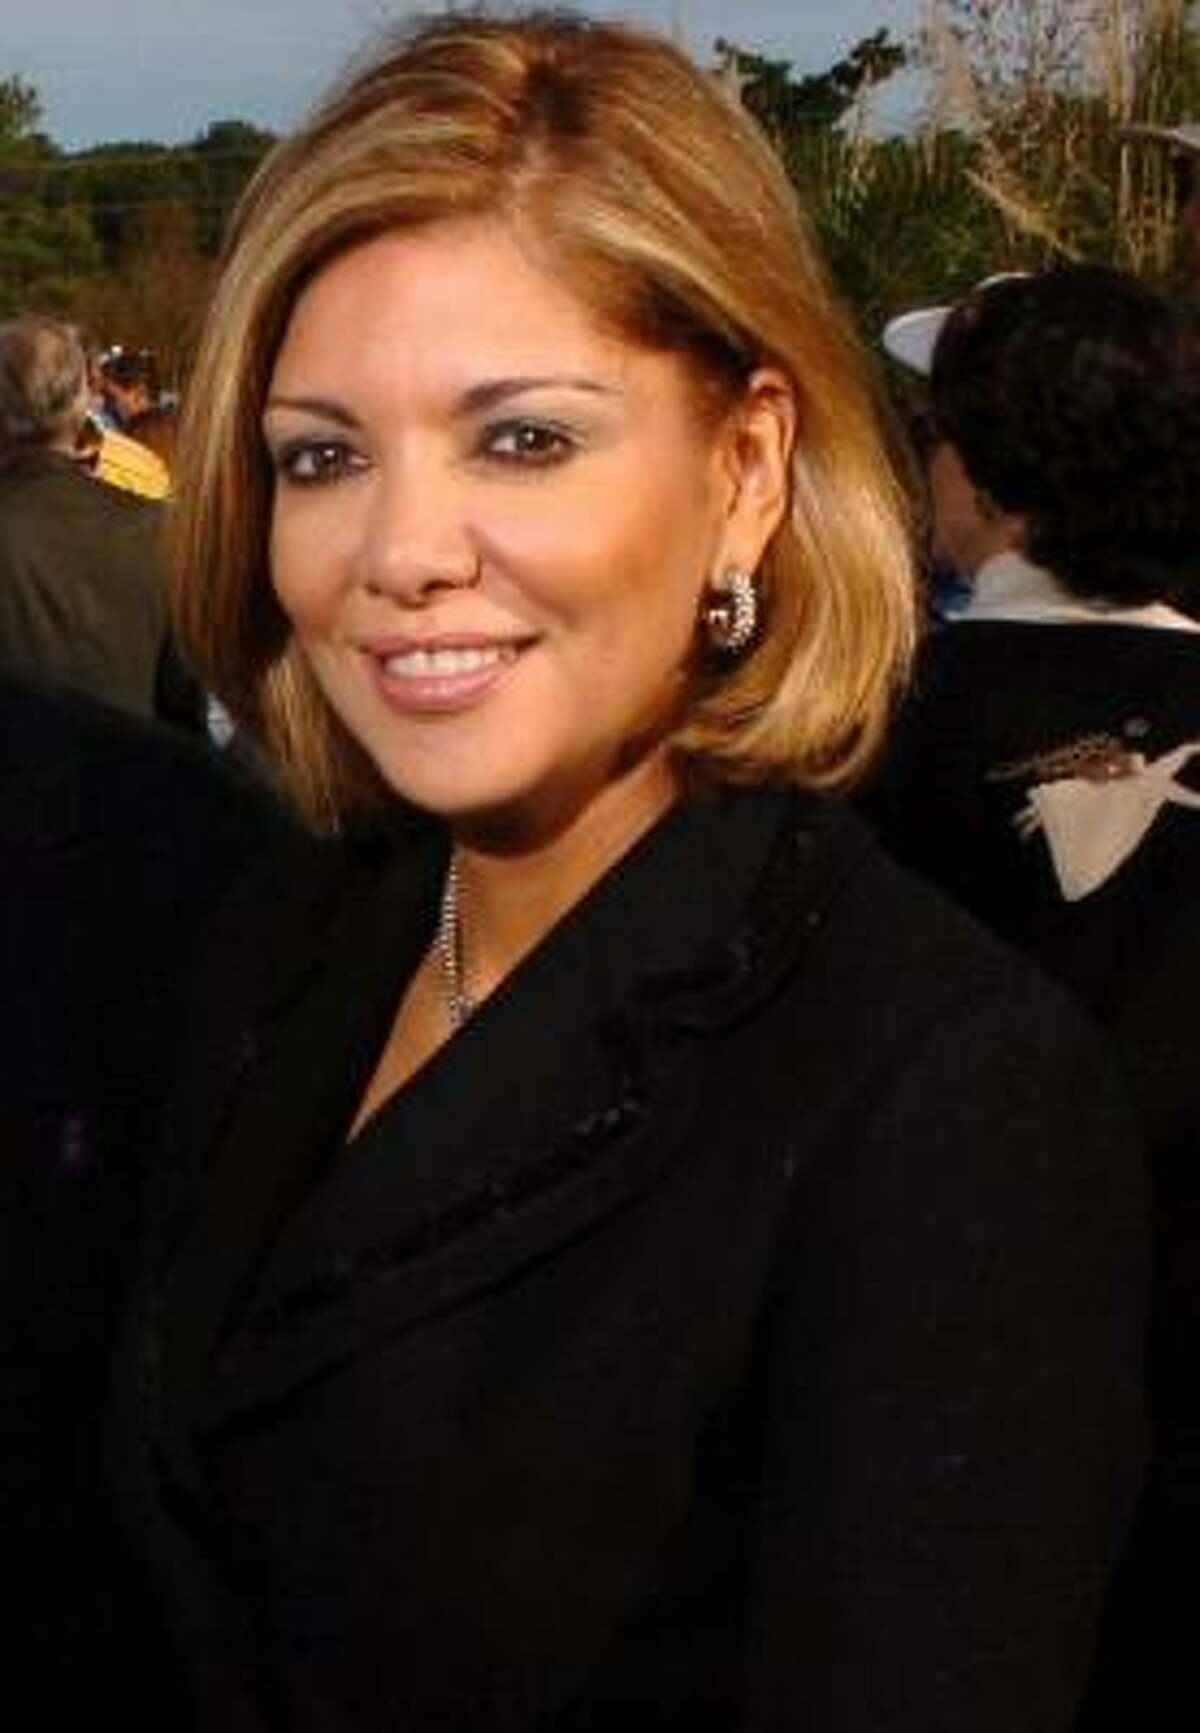 UH and South Texas College of Law alum Eva Guzman is a former family court judge.